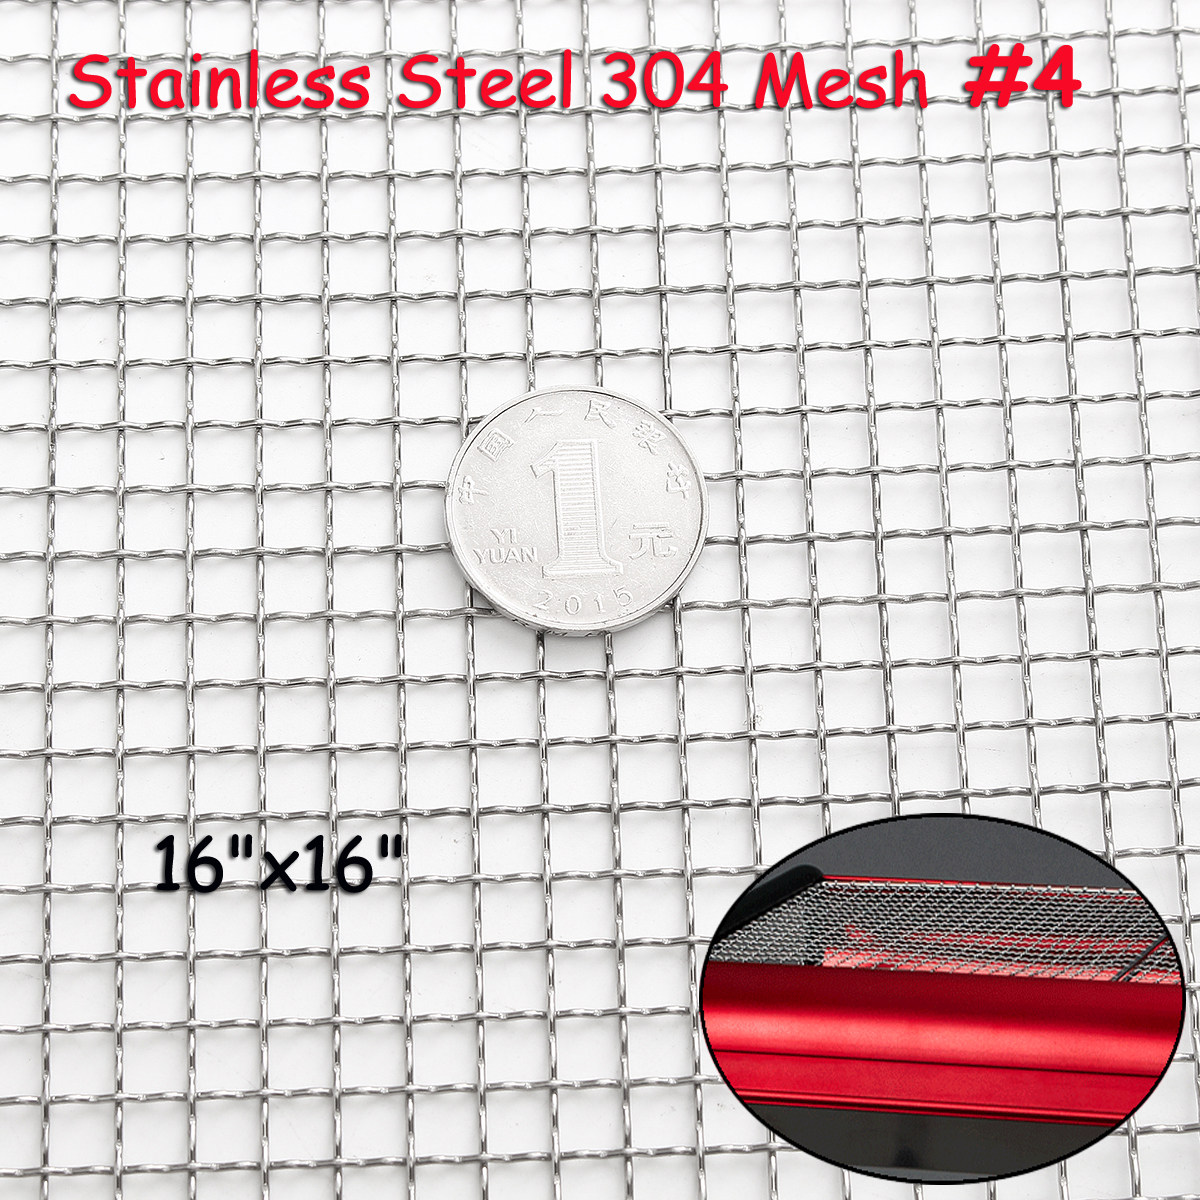 NEW Stainless Steel 304 Mesh #4 .047 Wire Cloth Screen Filter 16''x16'' 40cm x 40cm